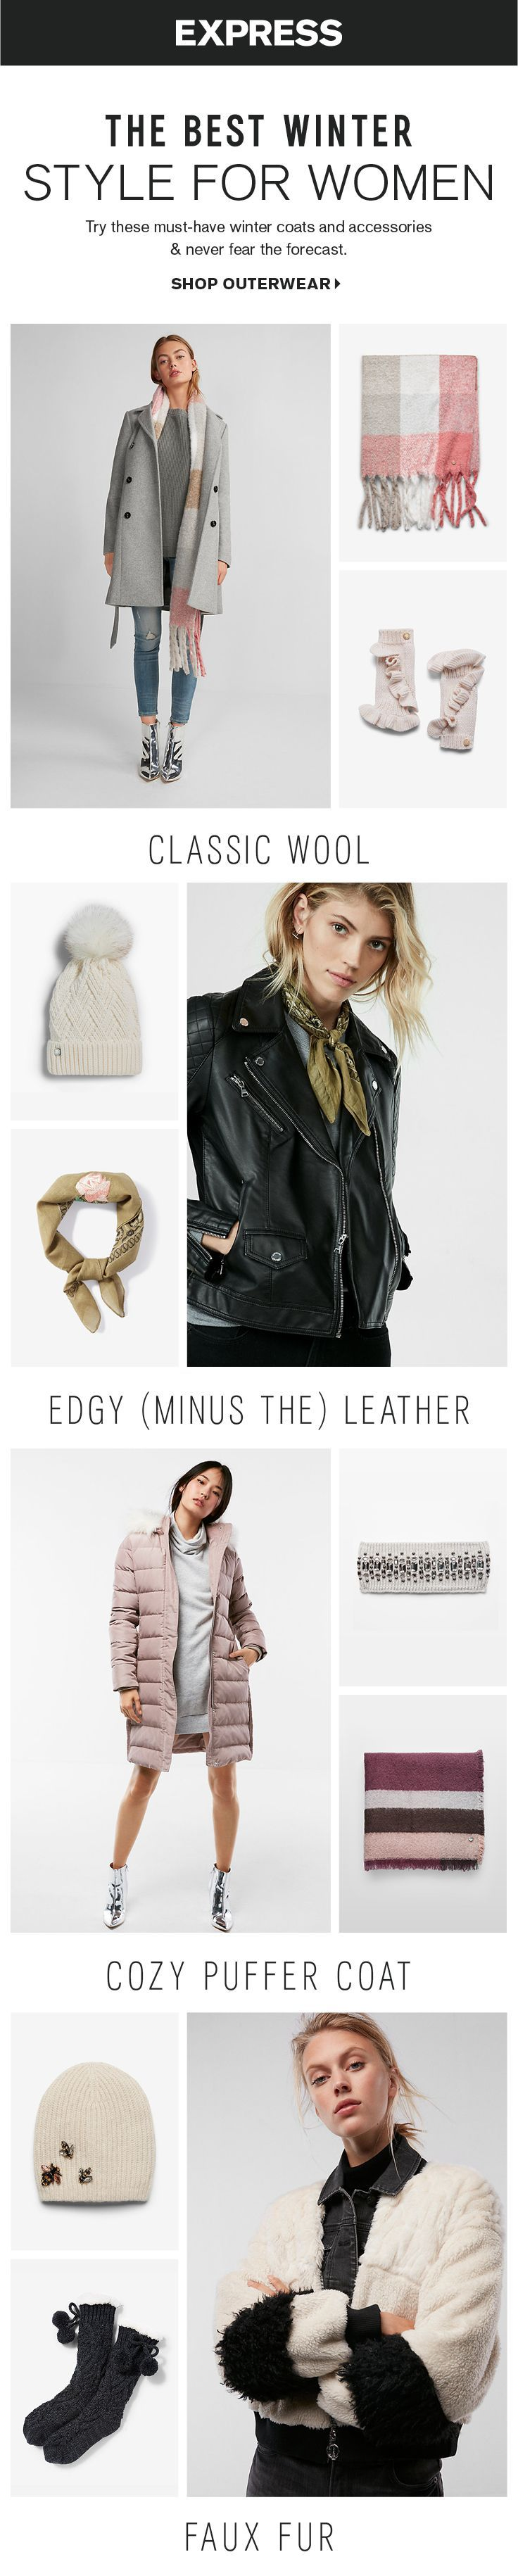 Shop the best winter style for women at Express. For classic style, go for a women's gray peacoat and blush pink winter accessories. If you're edgy, opt for a (minus the) leather moto jacket and a pom beanie for women. The puffer coat for women is great f